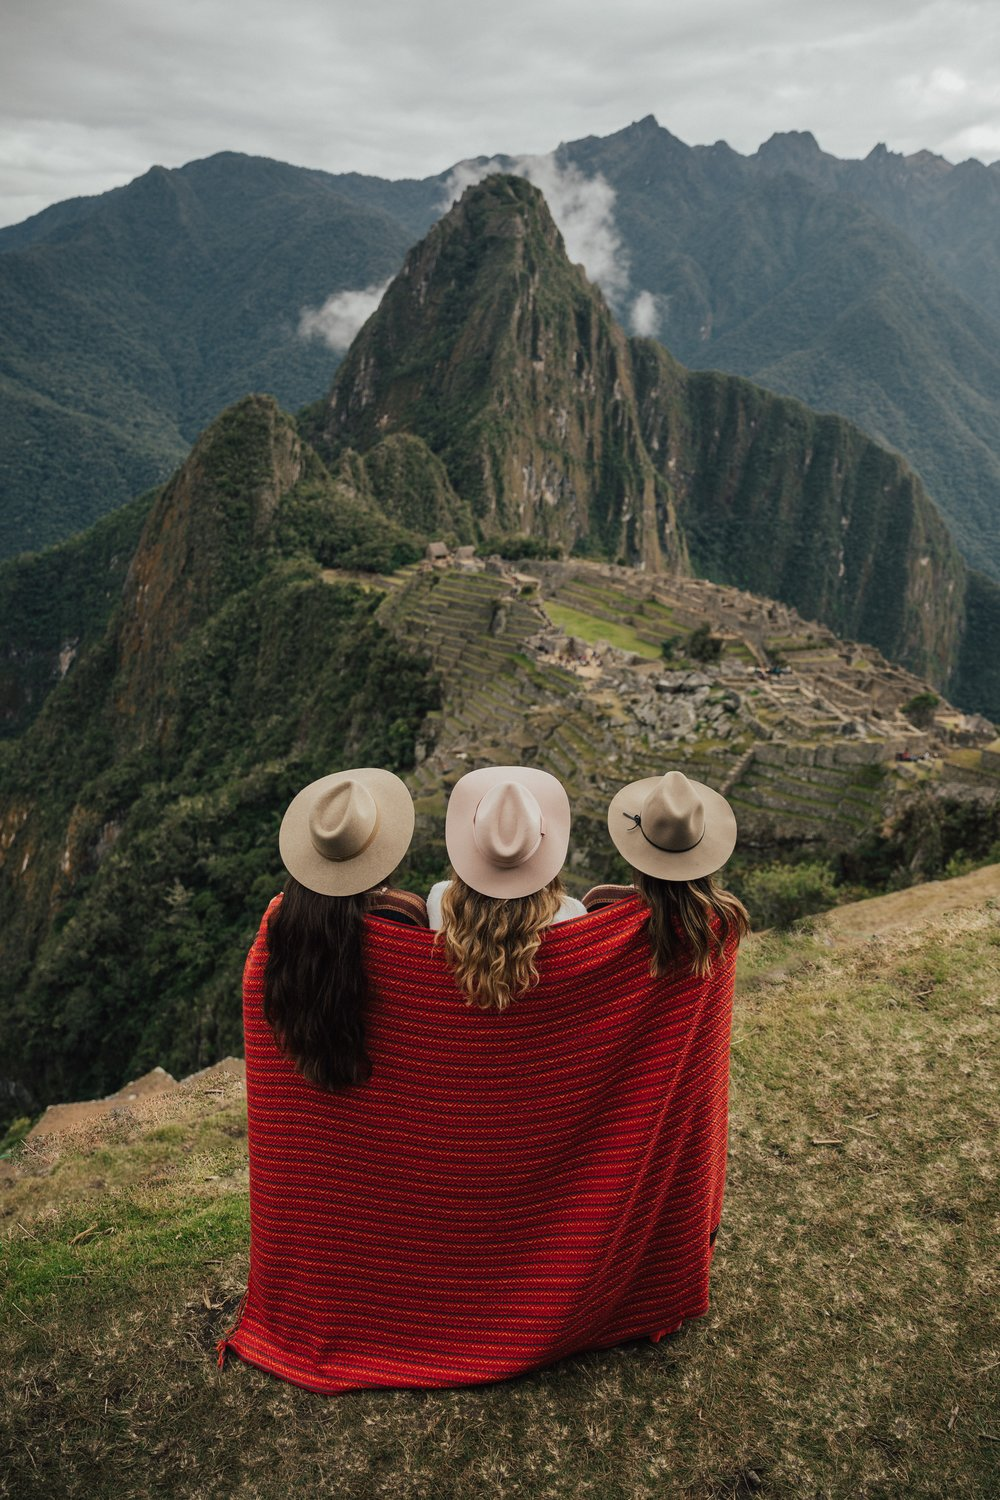 ACANELA EXPEDITIONS    |  Join us on a small group tour to Peru,. Climb Machu Picchu at sunrise, stroll the bustling markets of the sacred valley, AND EXPLORE CUSCO!